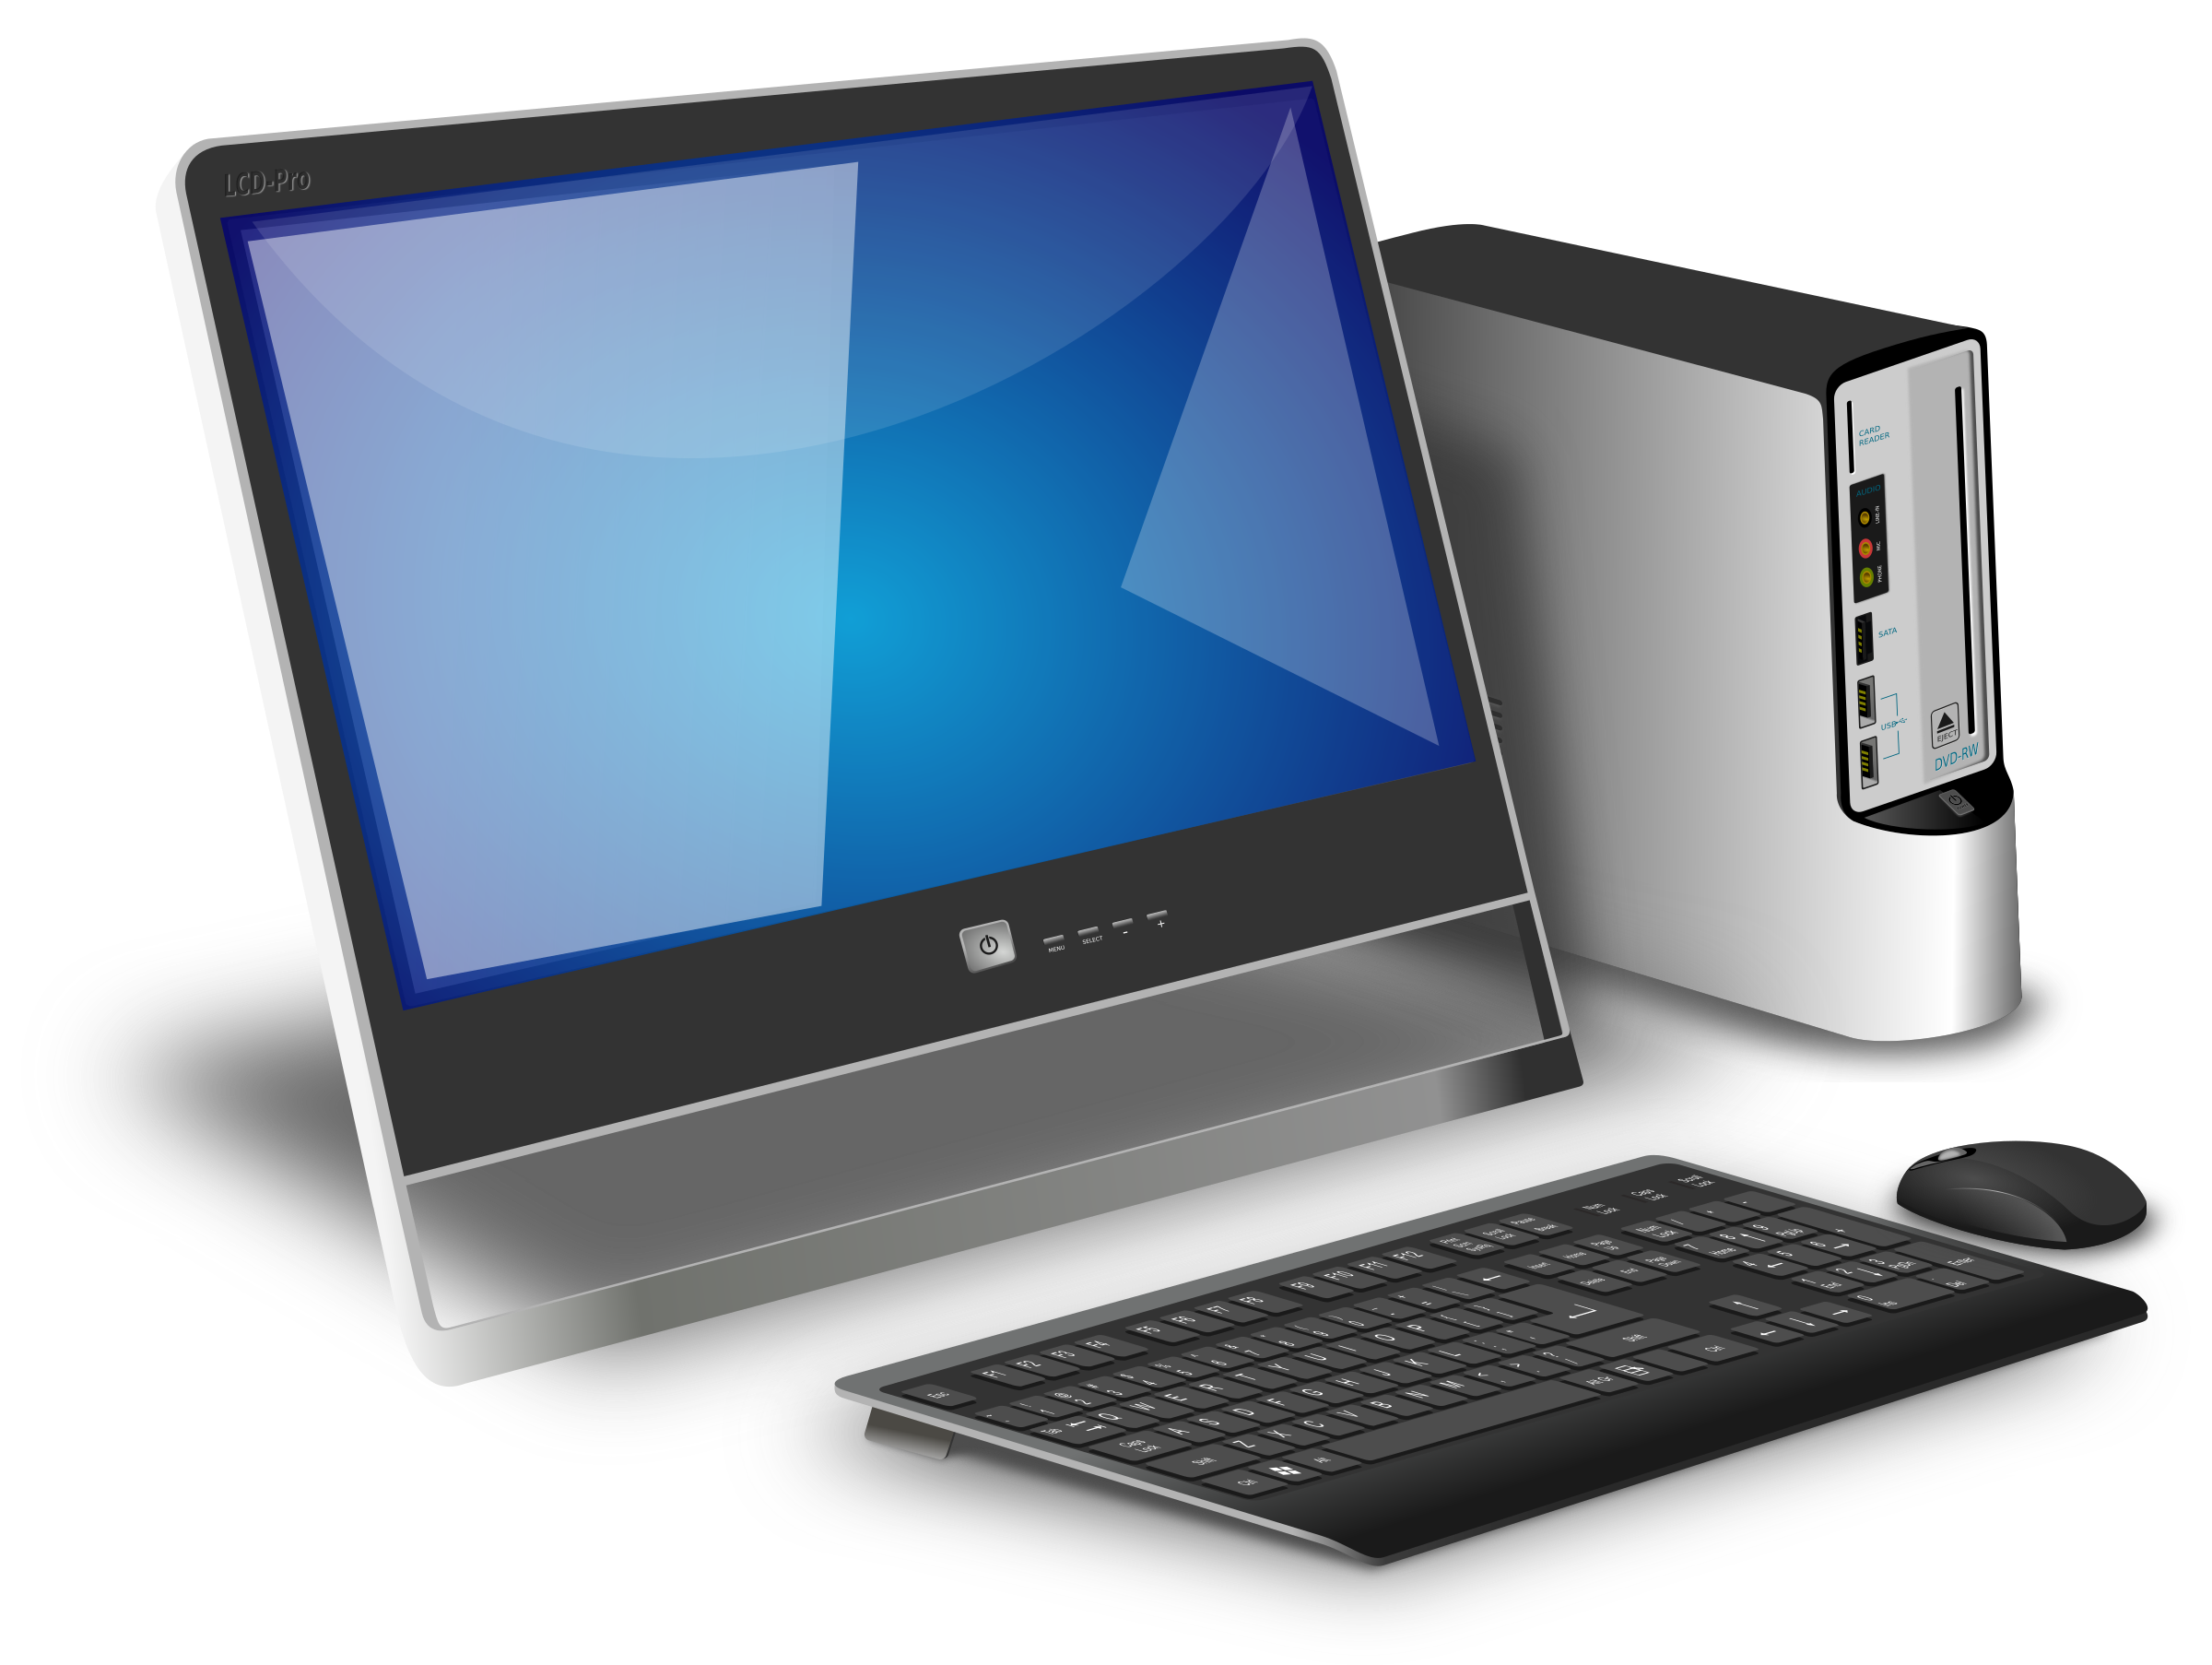 Desktop Computer with monitor vector clipart image - Free stock photo - Public Domain ...